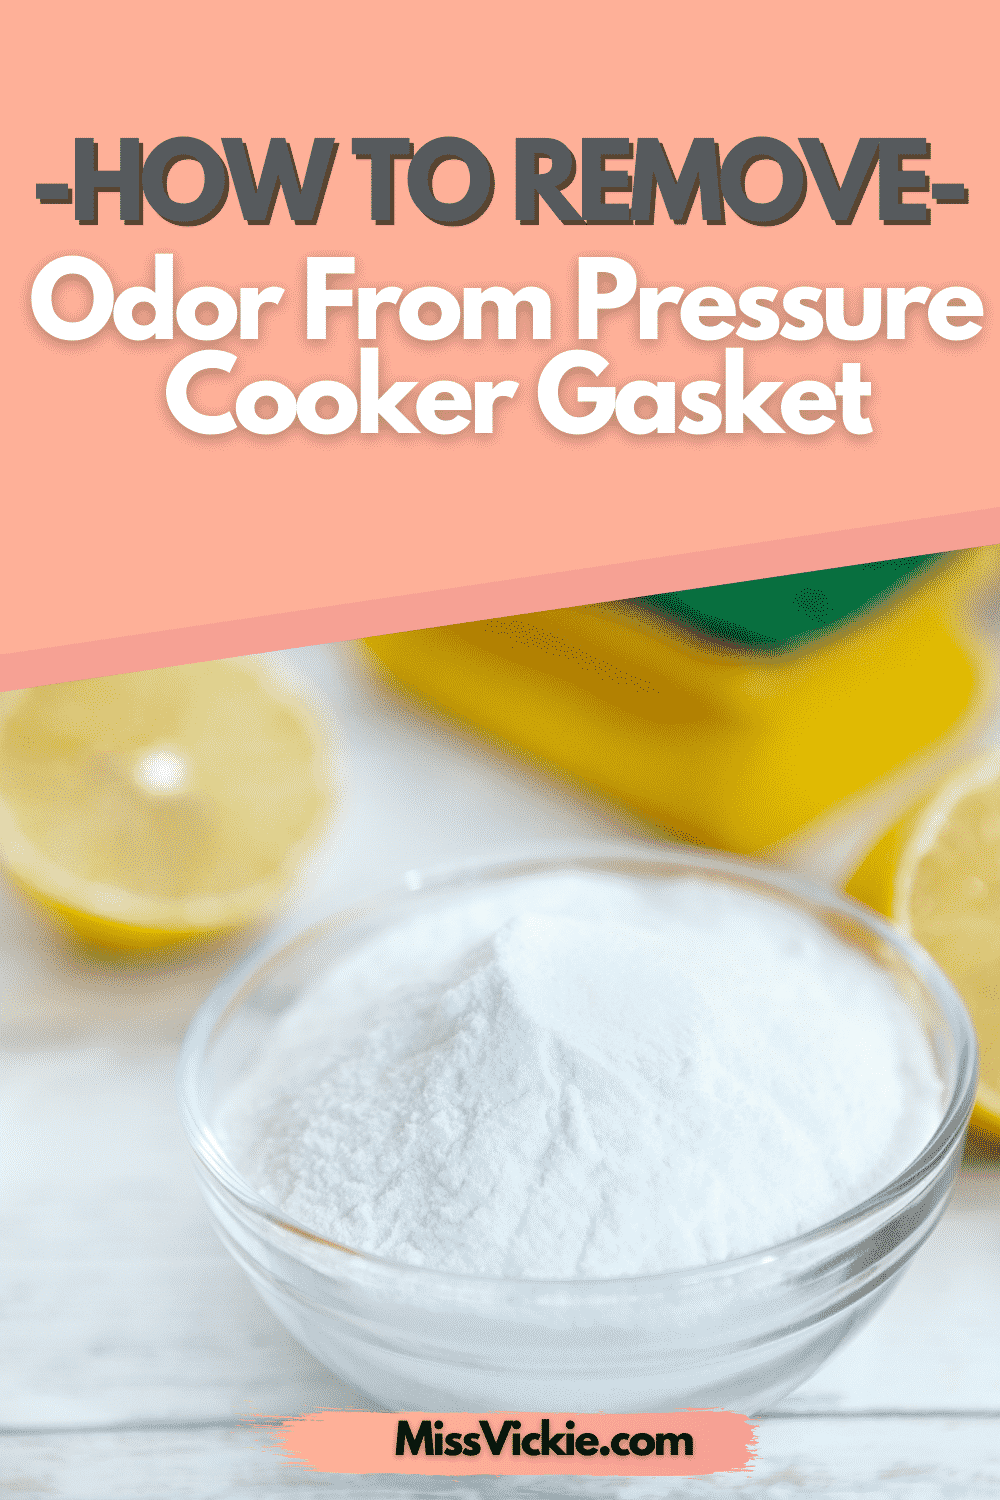 How To Remove Odor From Pressure Cooker Gasket